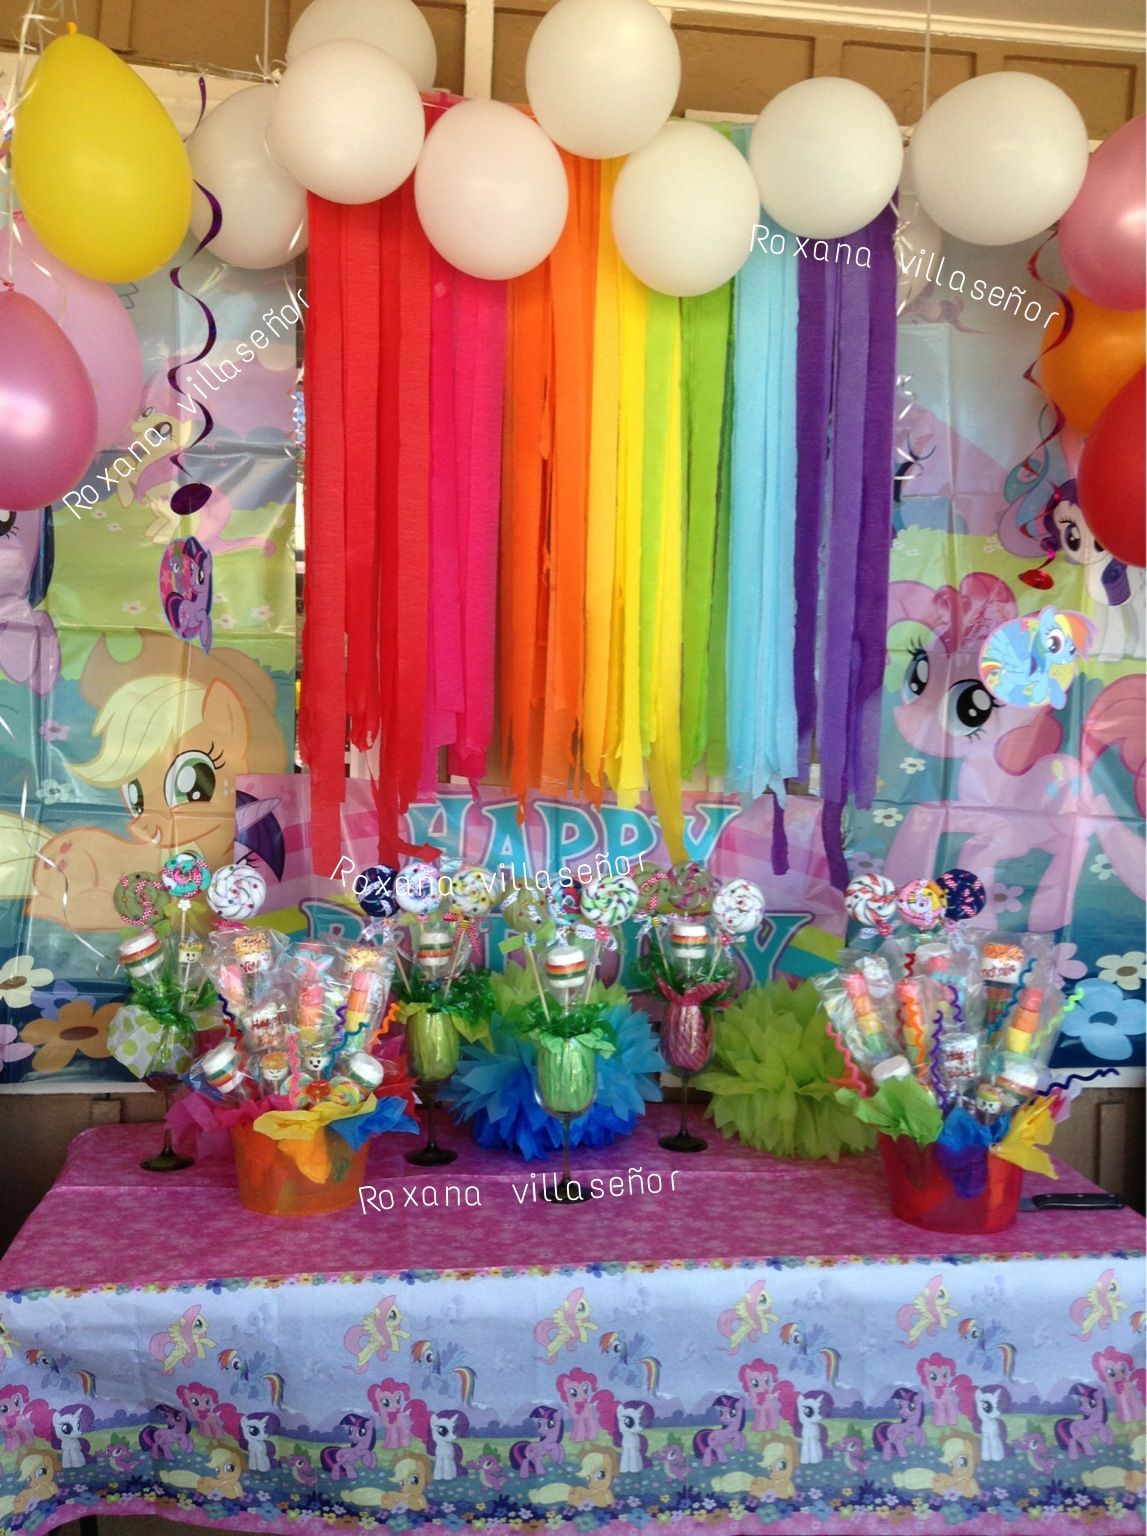 My little pony birthday party decorations for my twin daughters 6 ...